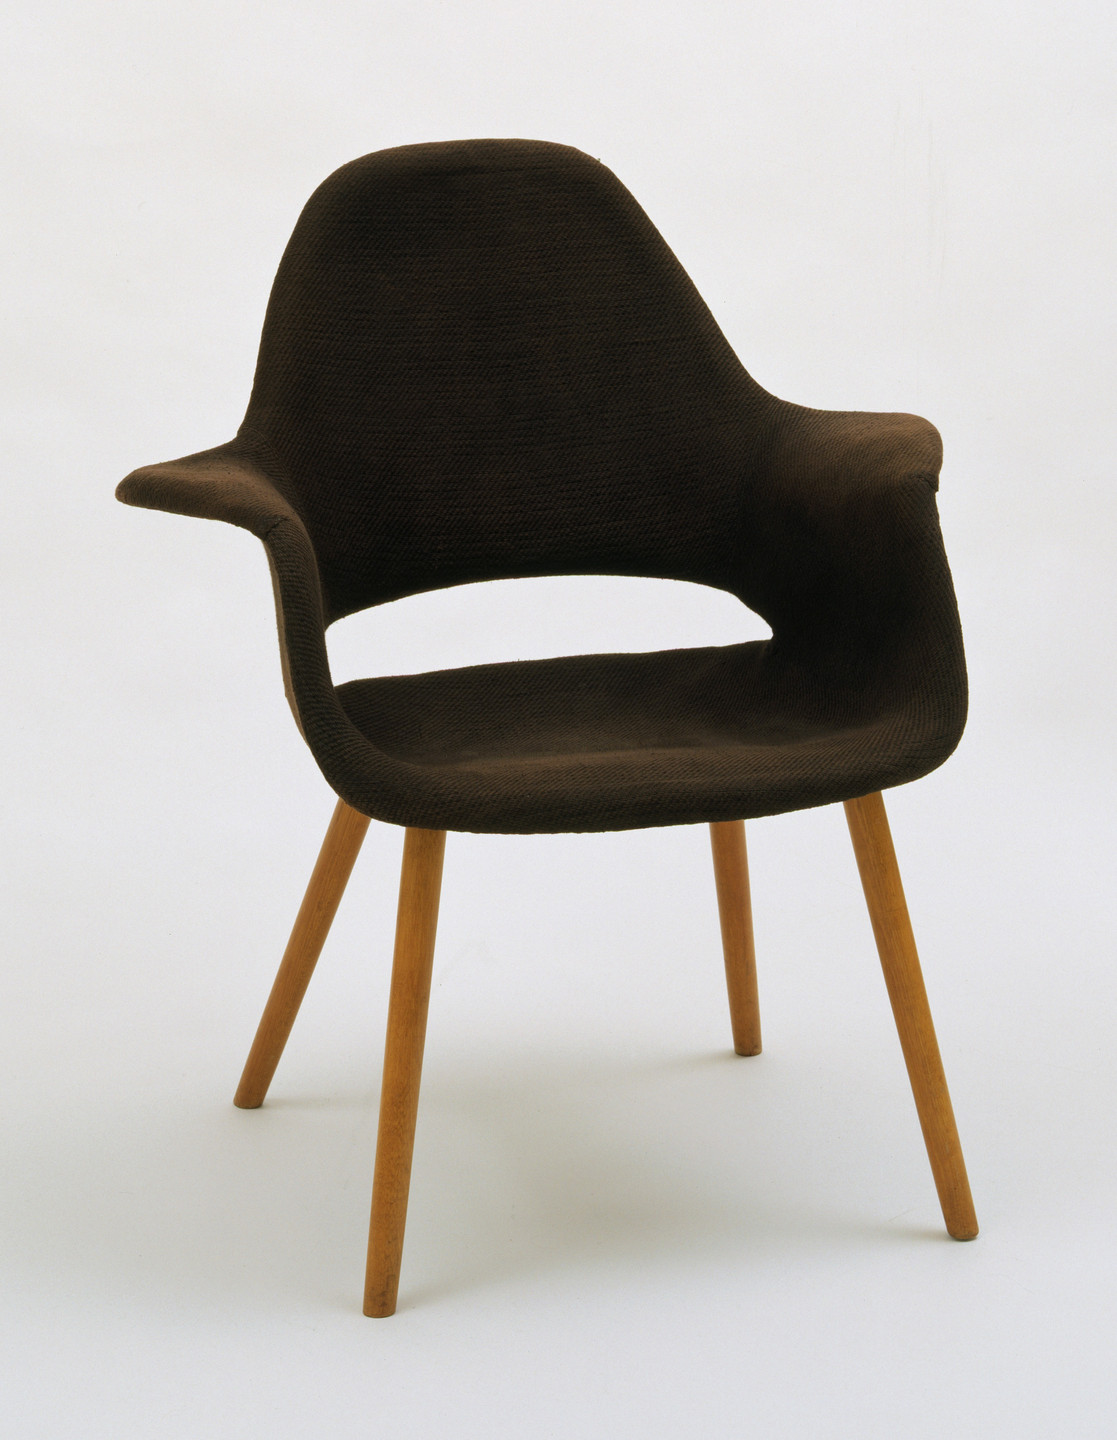 Charles Eames, Eero Saarinen, Marli Ehrman. Low-Back Armchair. 1940